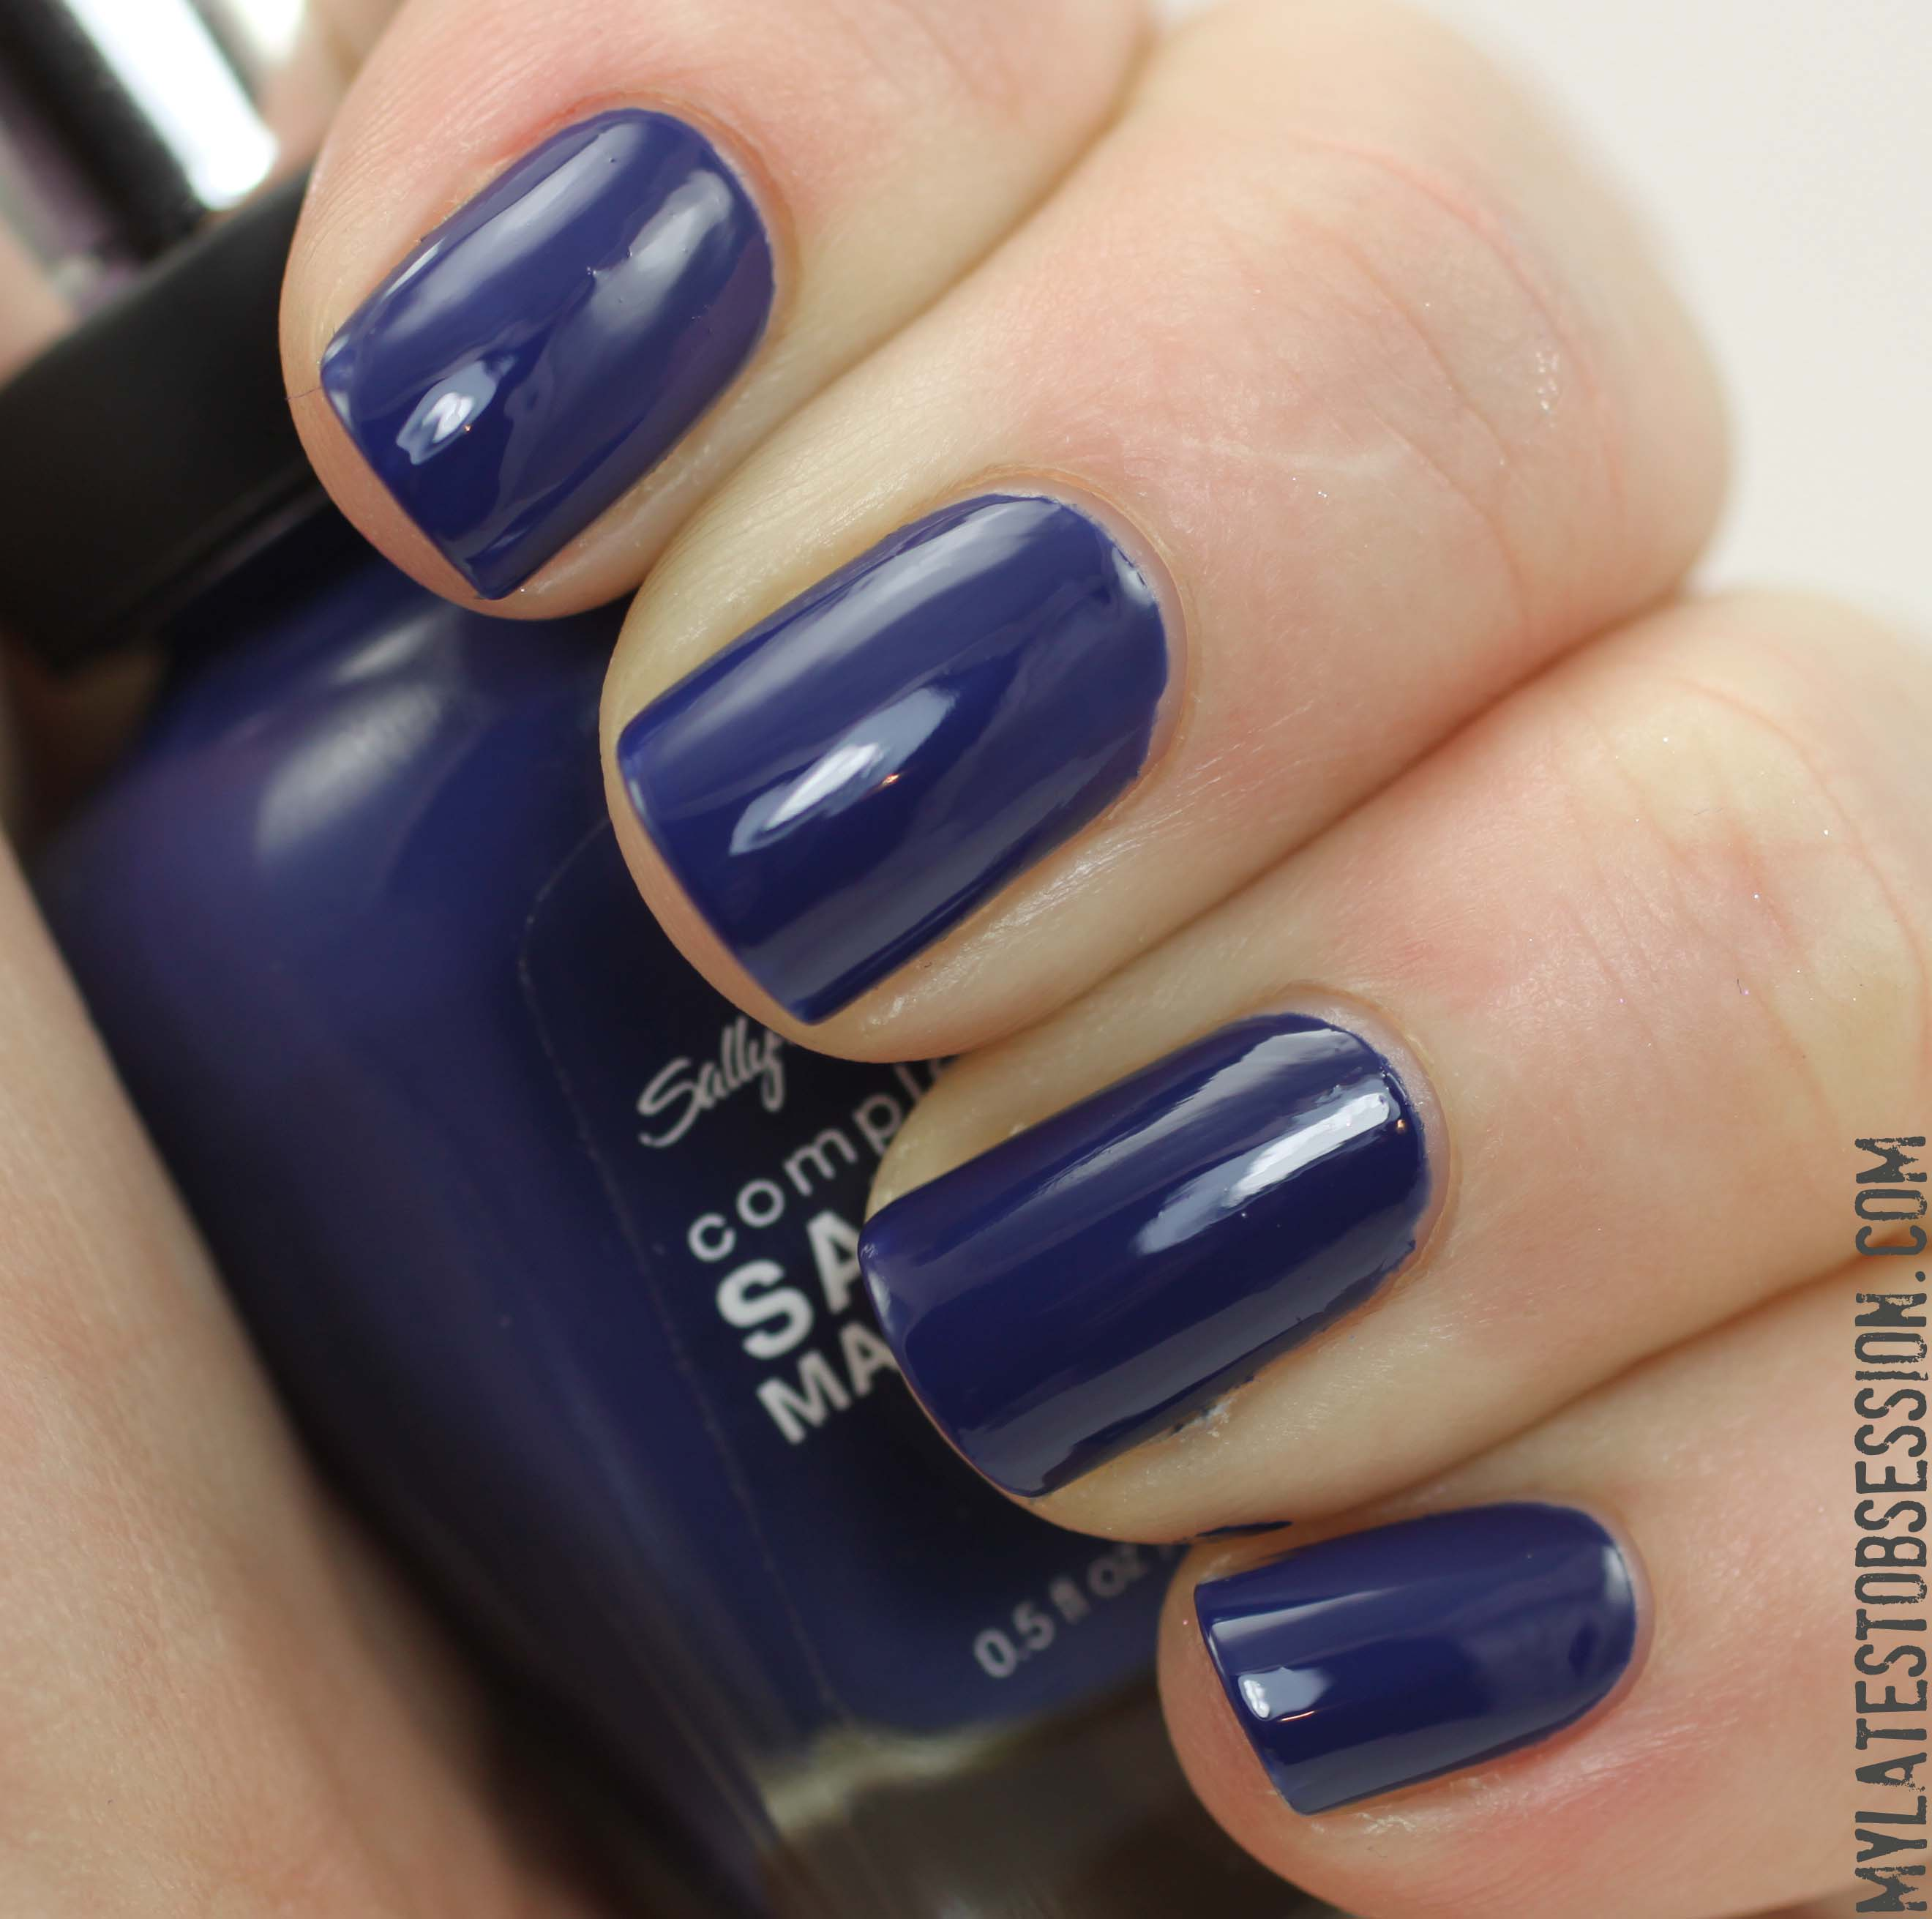 Sally Hansen - Thinking of Blue